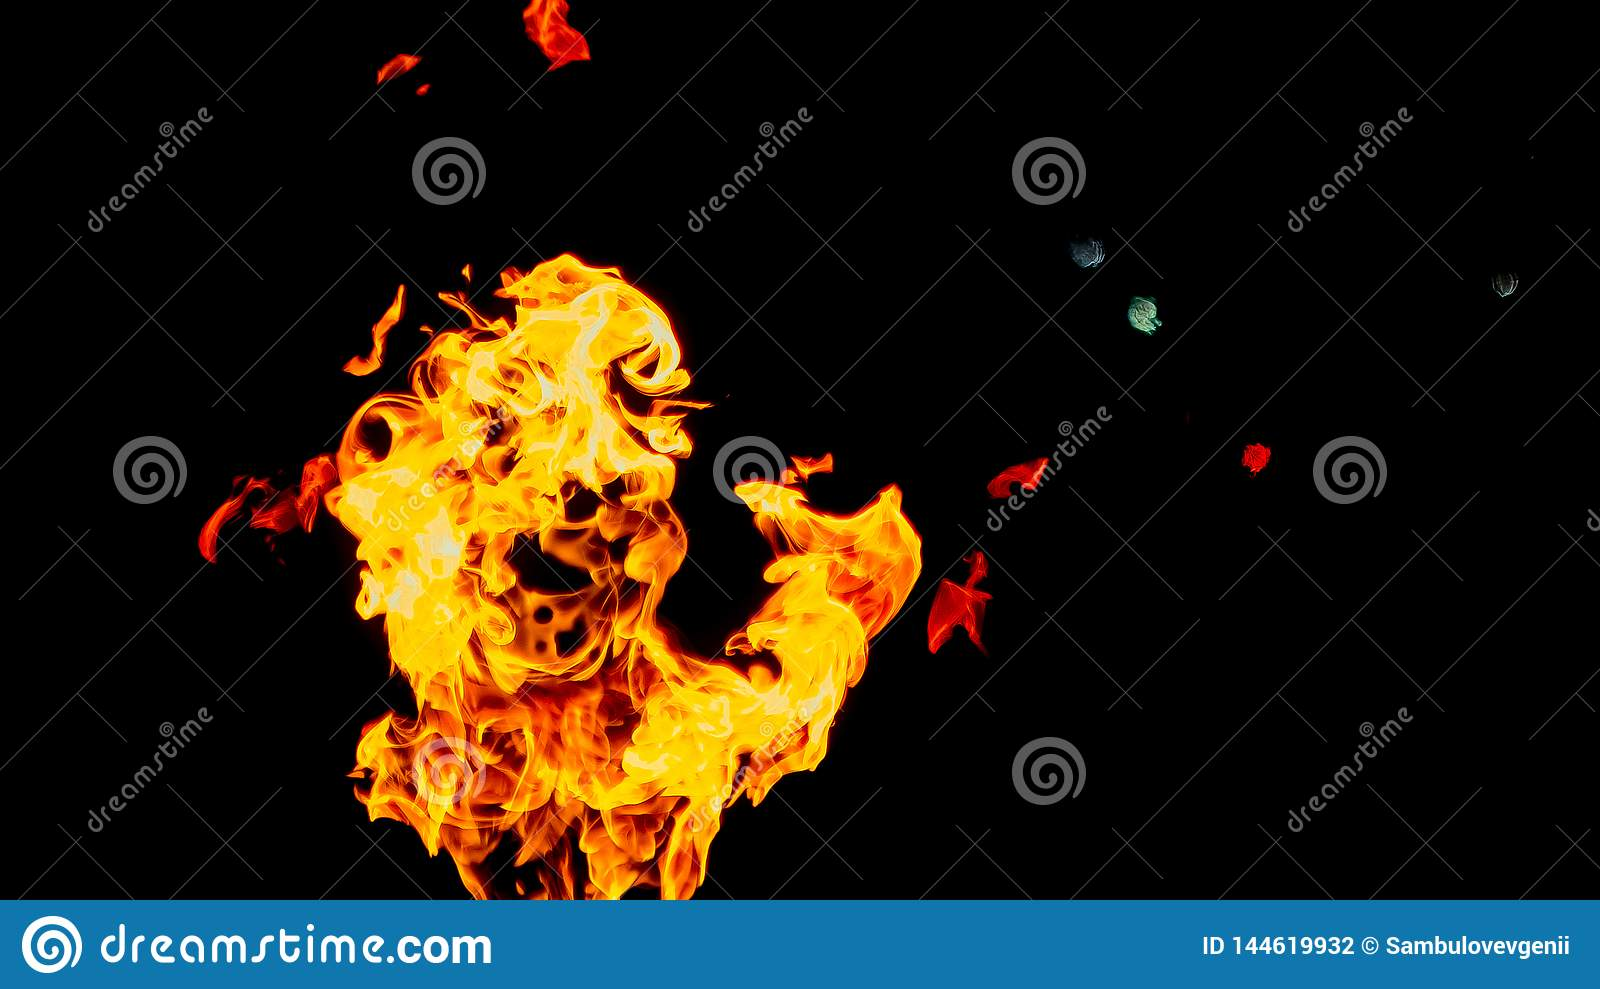 Ghost in the form of fire. Fire flames on black background. fire on black background isolated. fire patterns